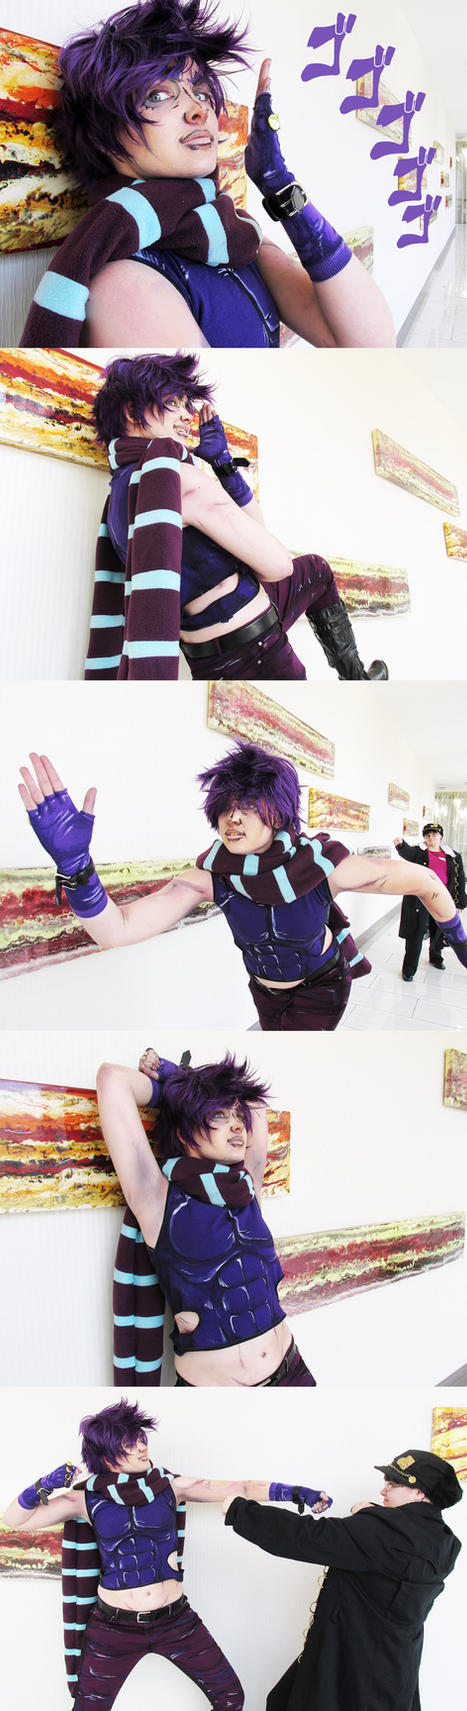 Joseph Joestar Cosplay P1 by Fishmas